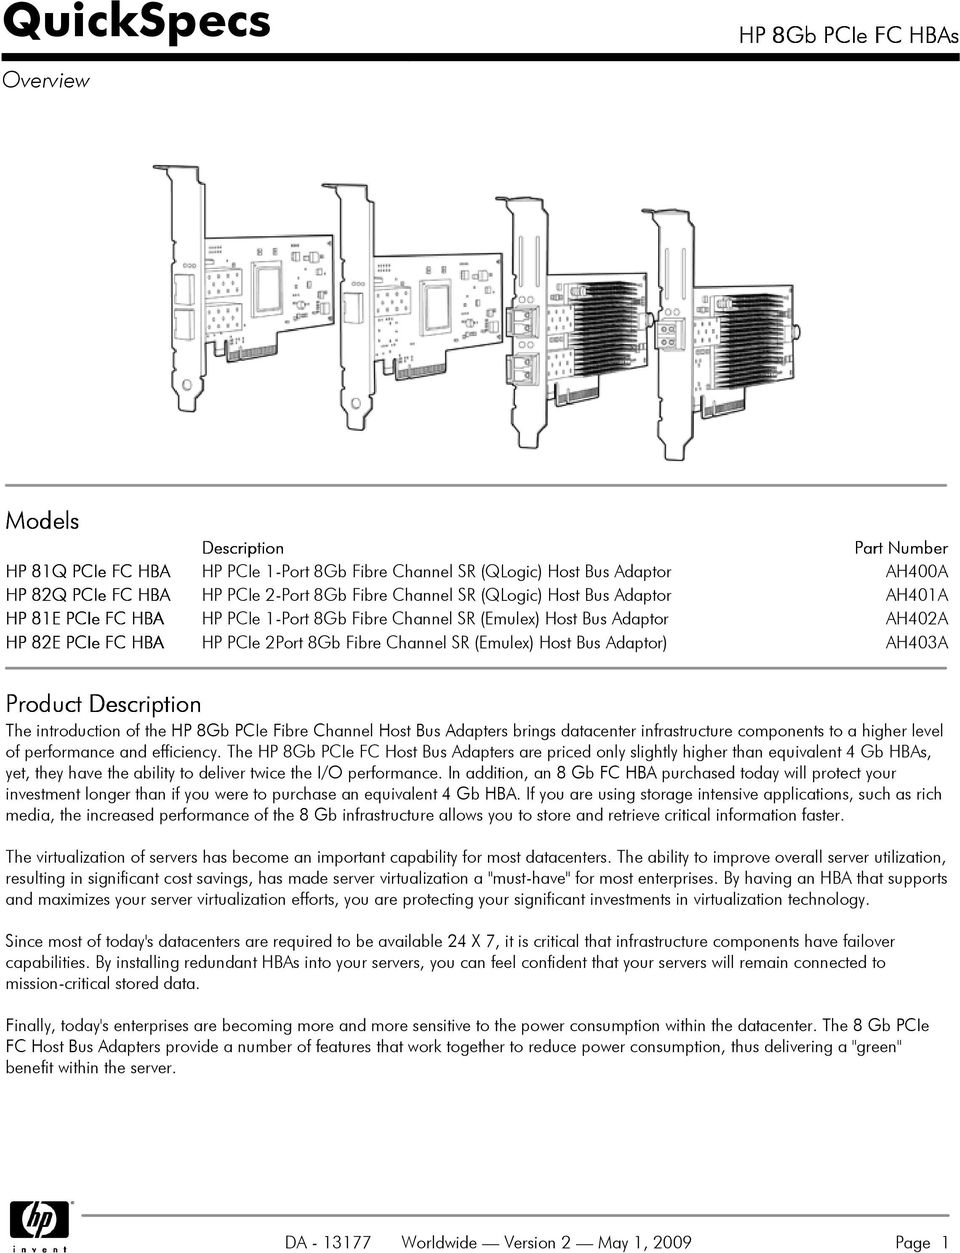 Product Description The introduction of the HP 8Gb PCIe Fibre Channel Host Bus Adapters brings datacenter infrastructure components to a higher level of performance and efficiency.